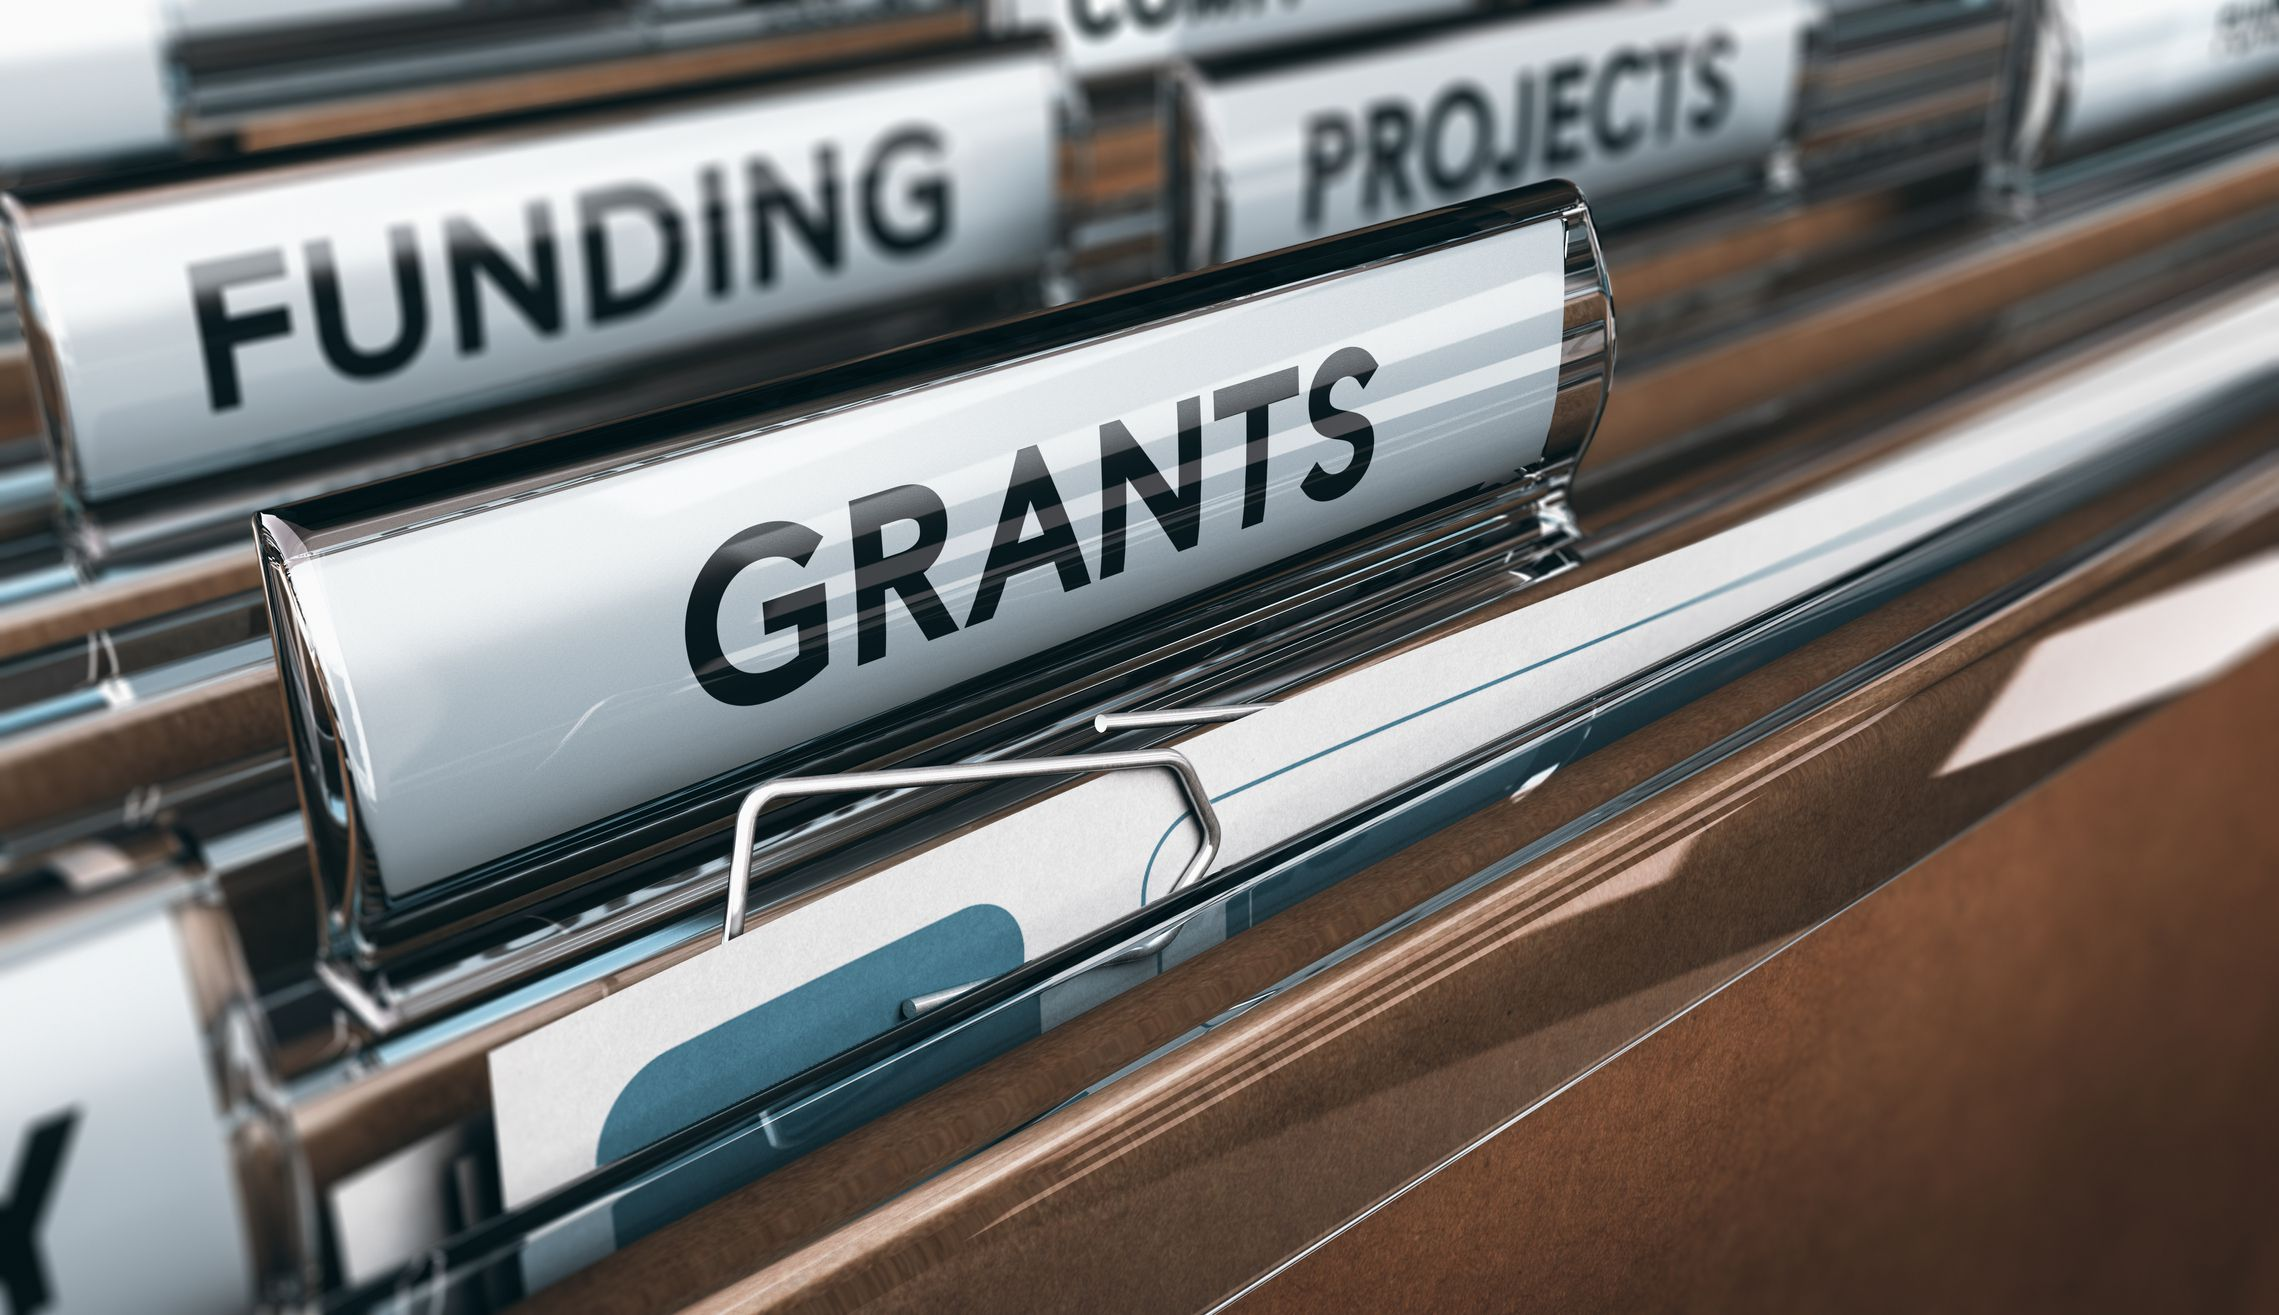 UK Government announces more grants for small business to support COVID-19 recovery